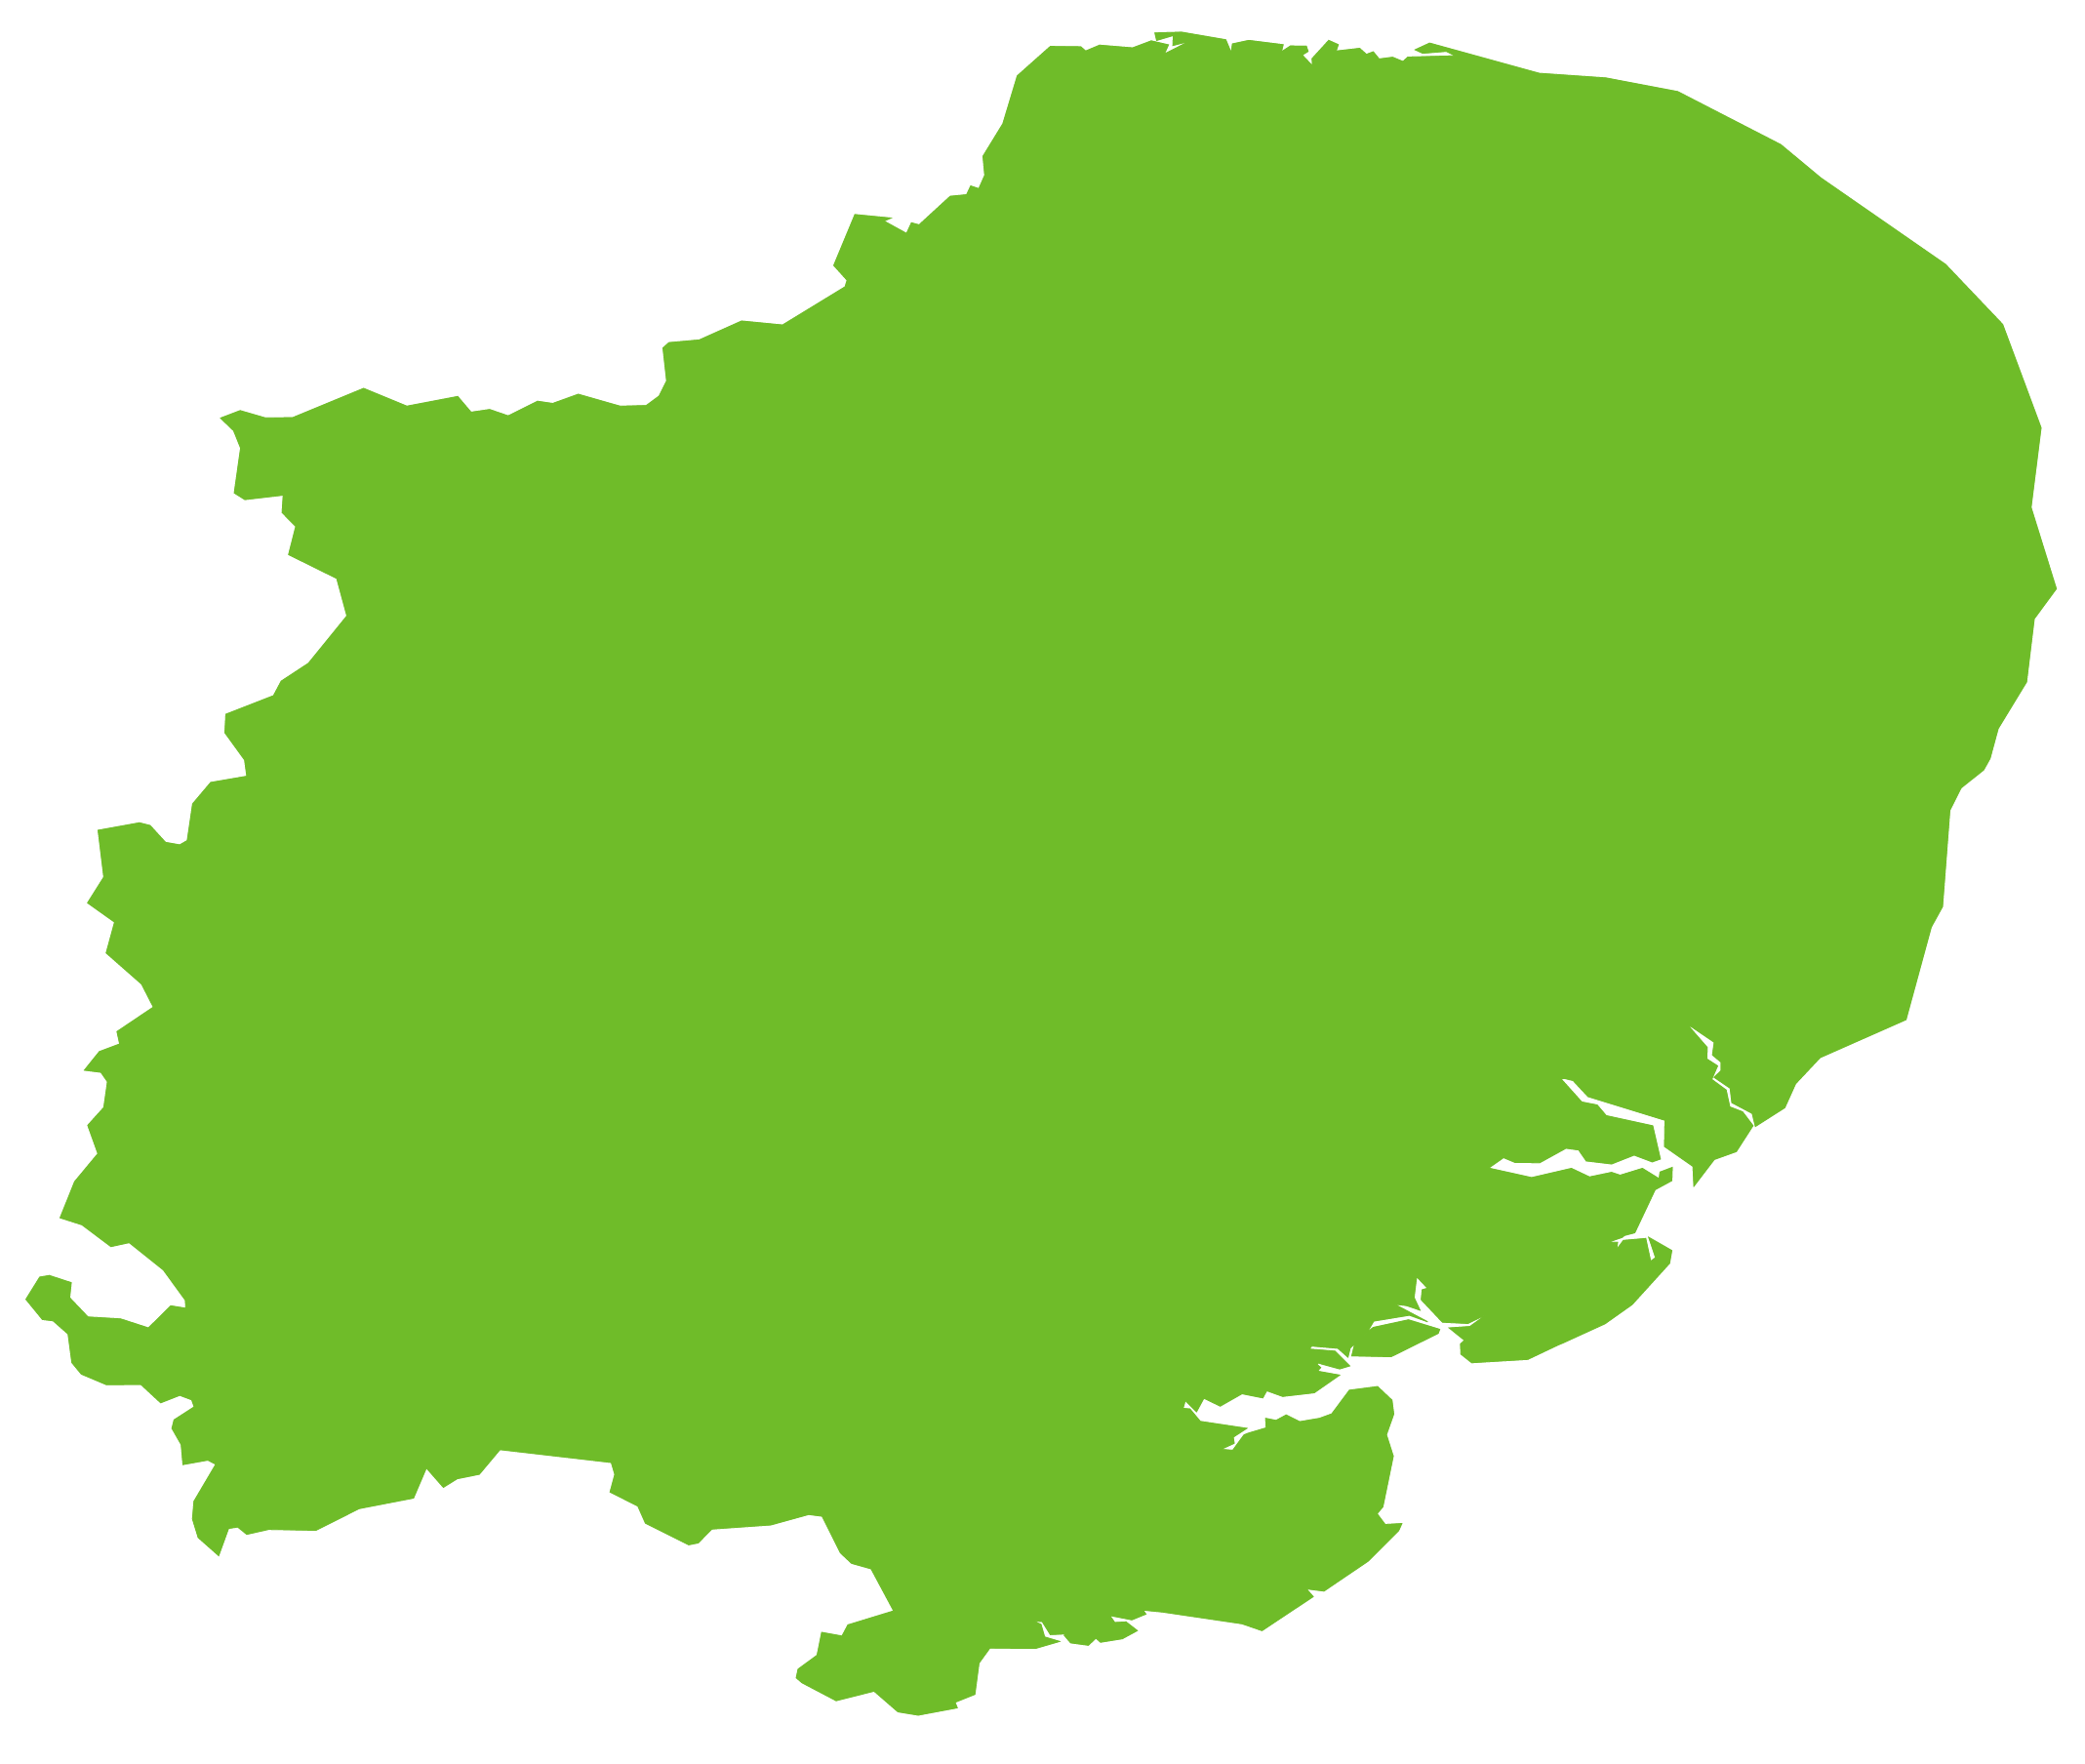 Map of the east of England